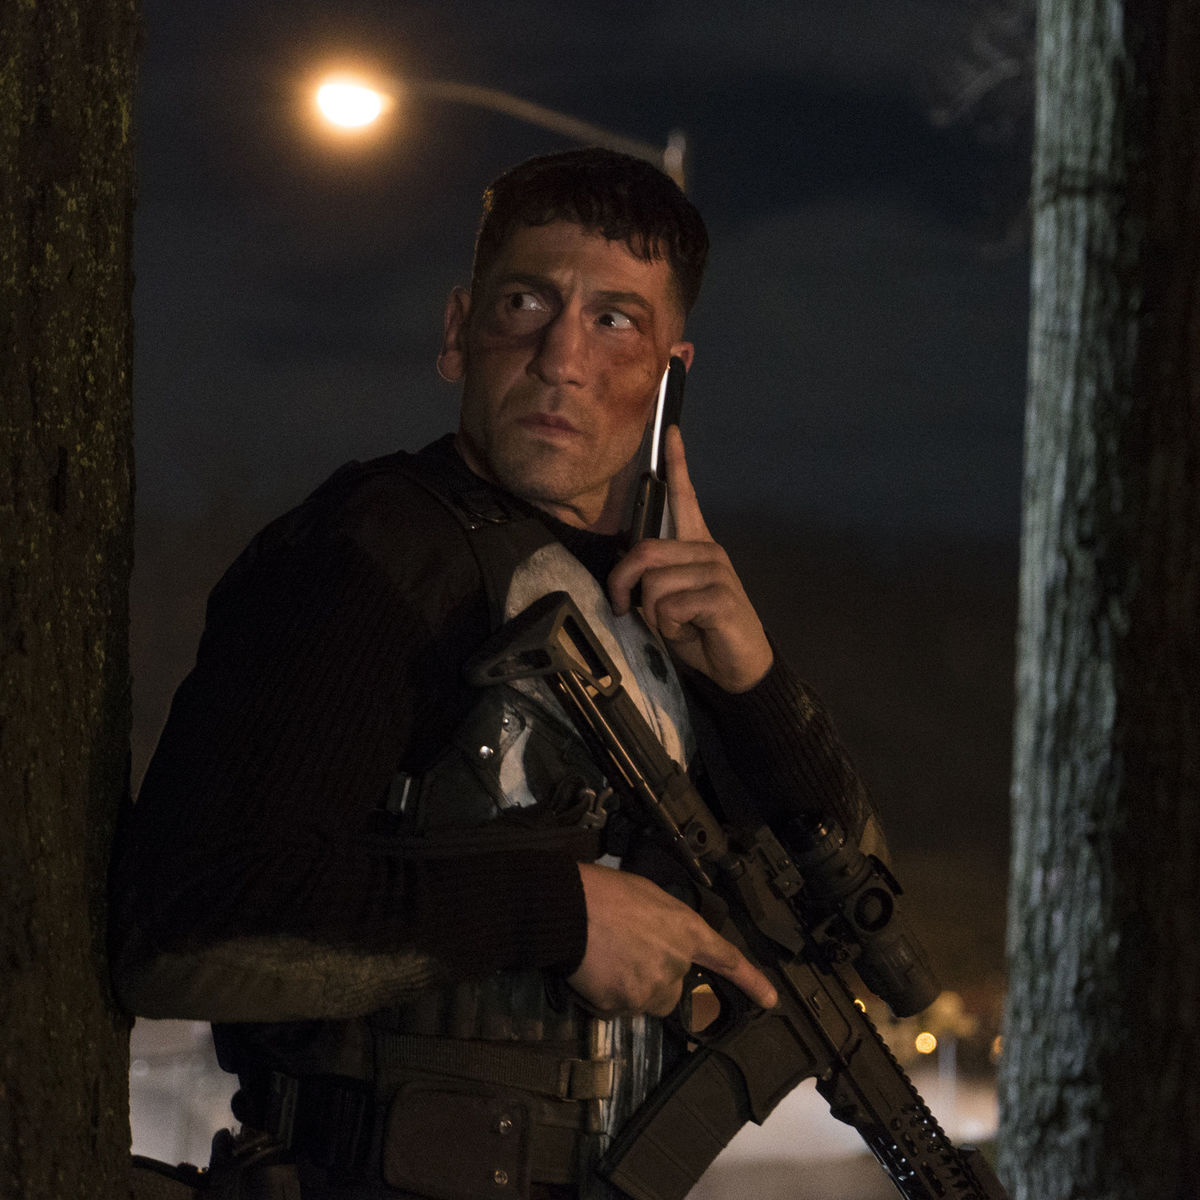 season 2 of netflix s the punisher has officially finished shooting